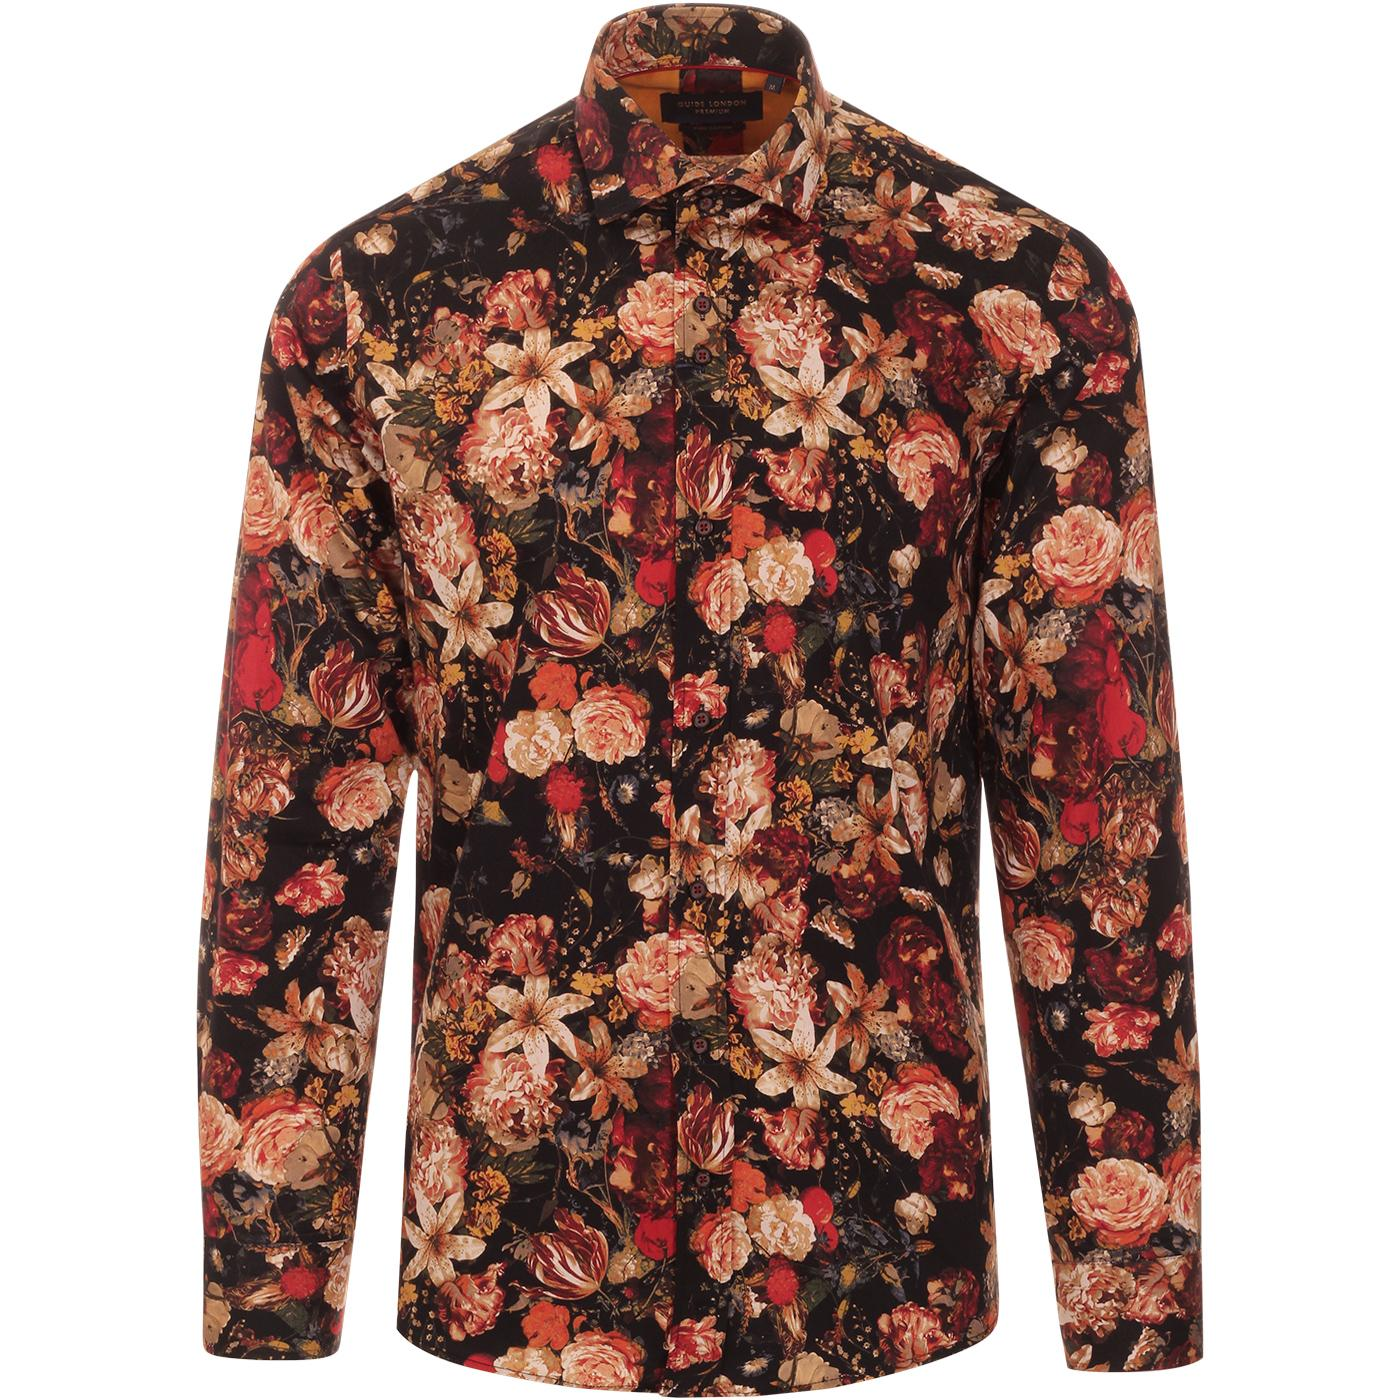 GUIDE LONDON Retro Mod Floral Painting Print Shirt